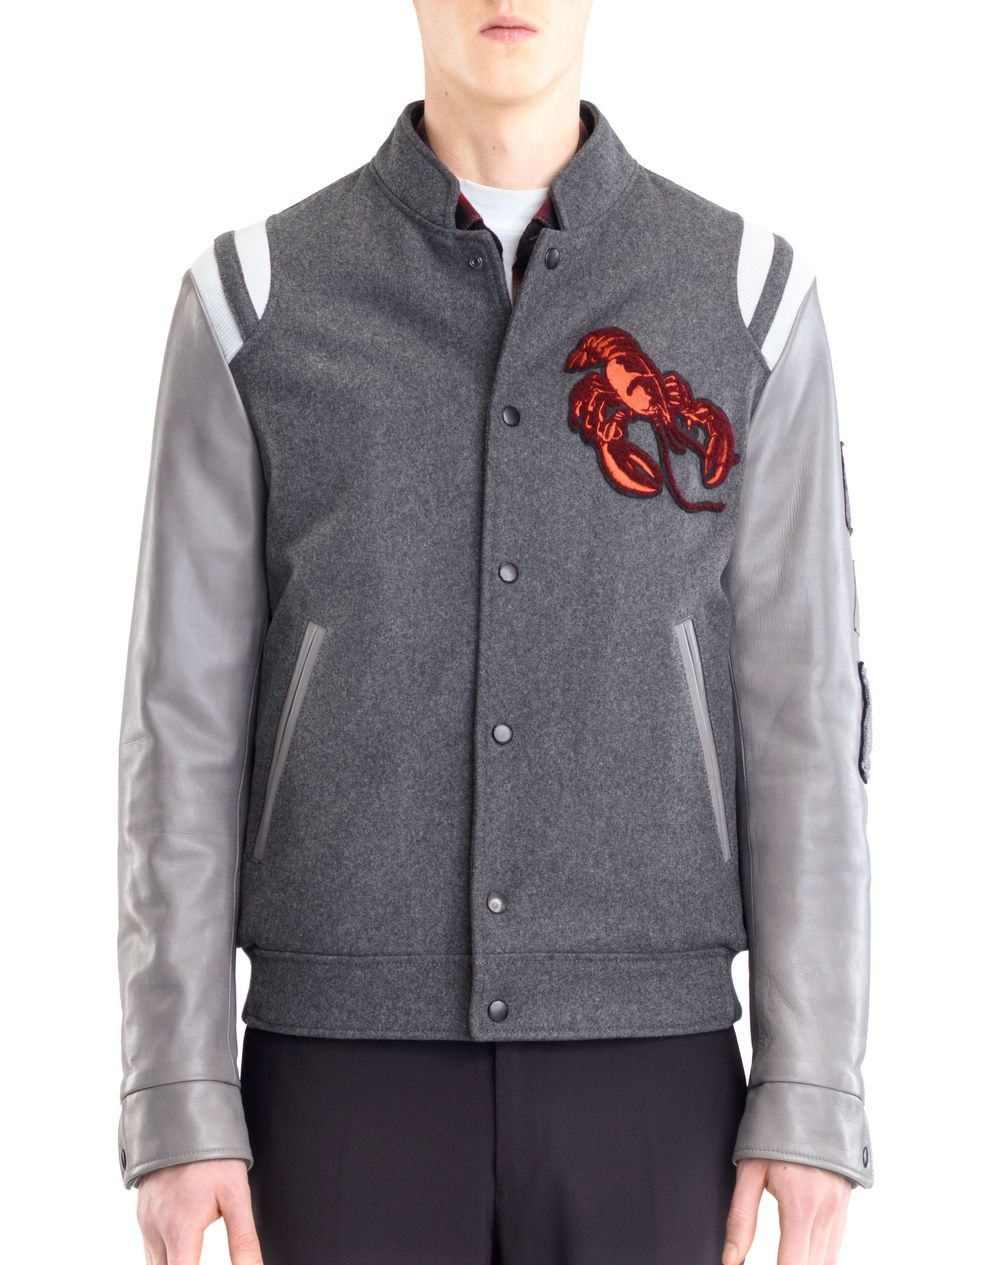 BASEBALL JACKET - Lanvin